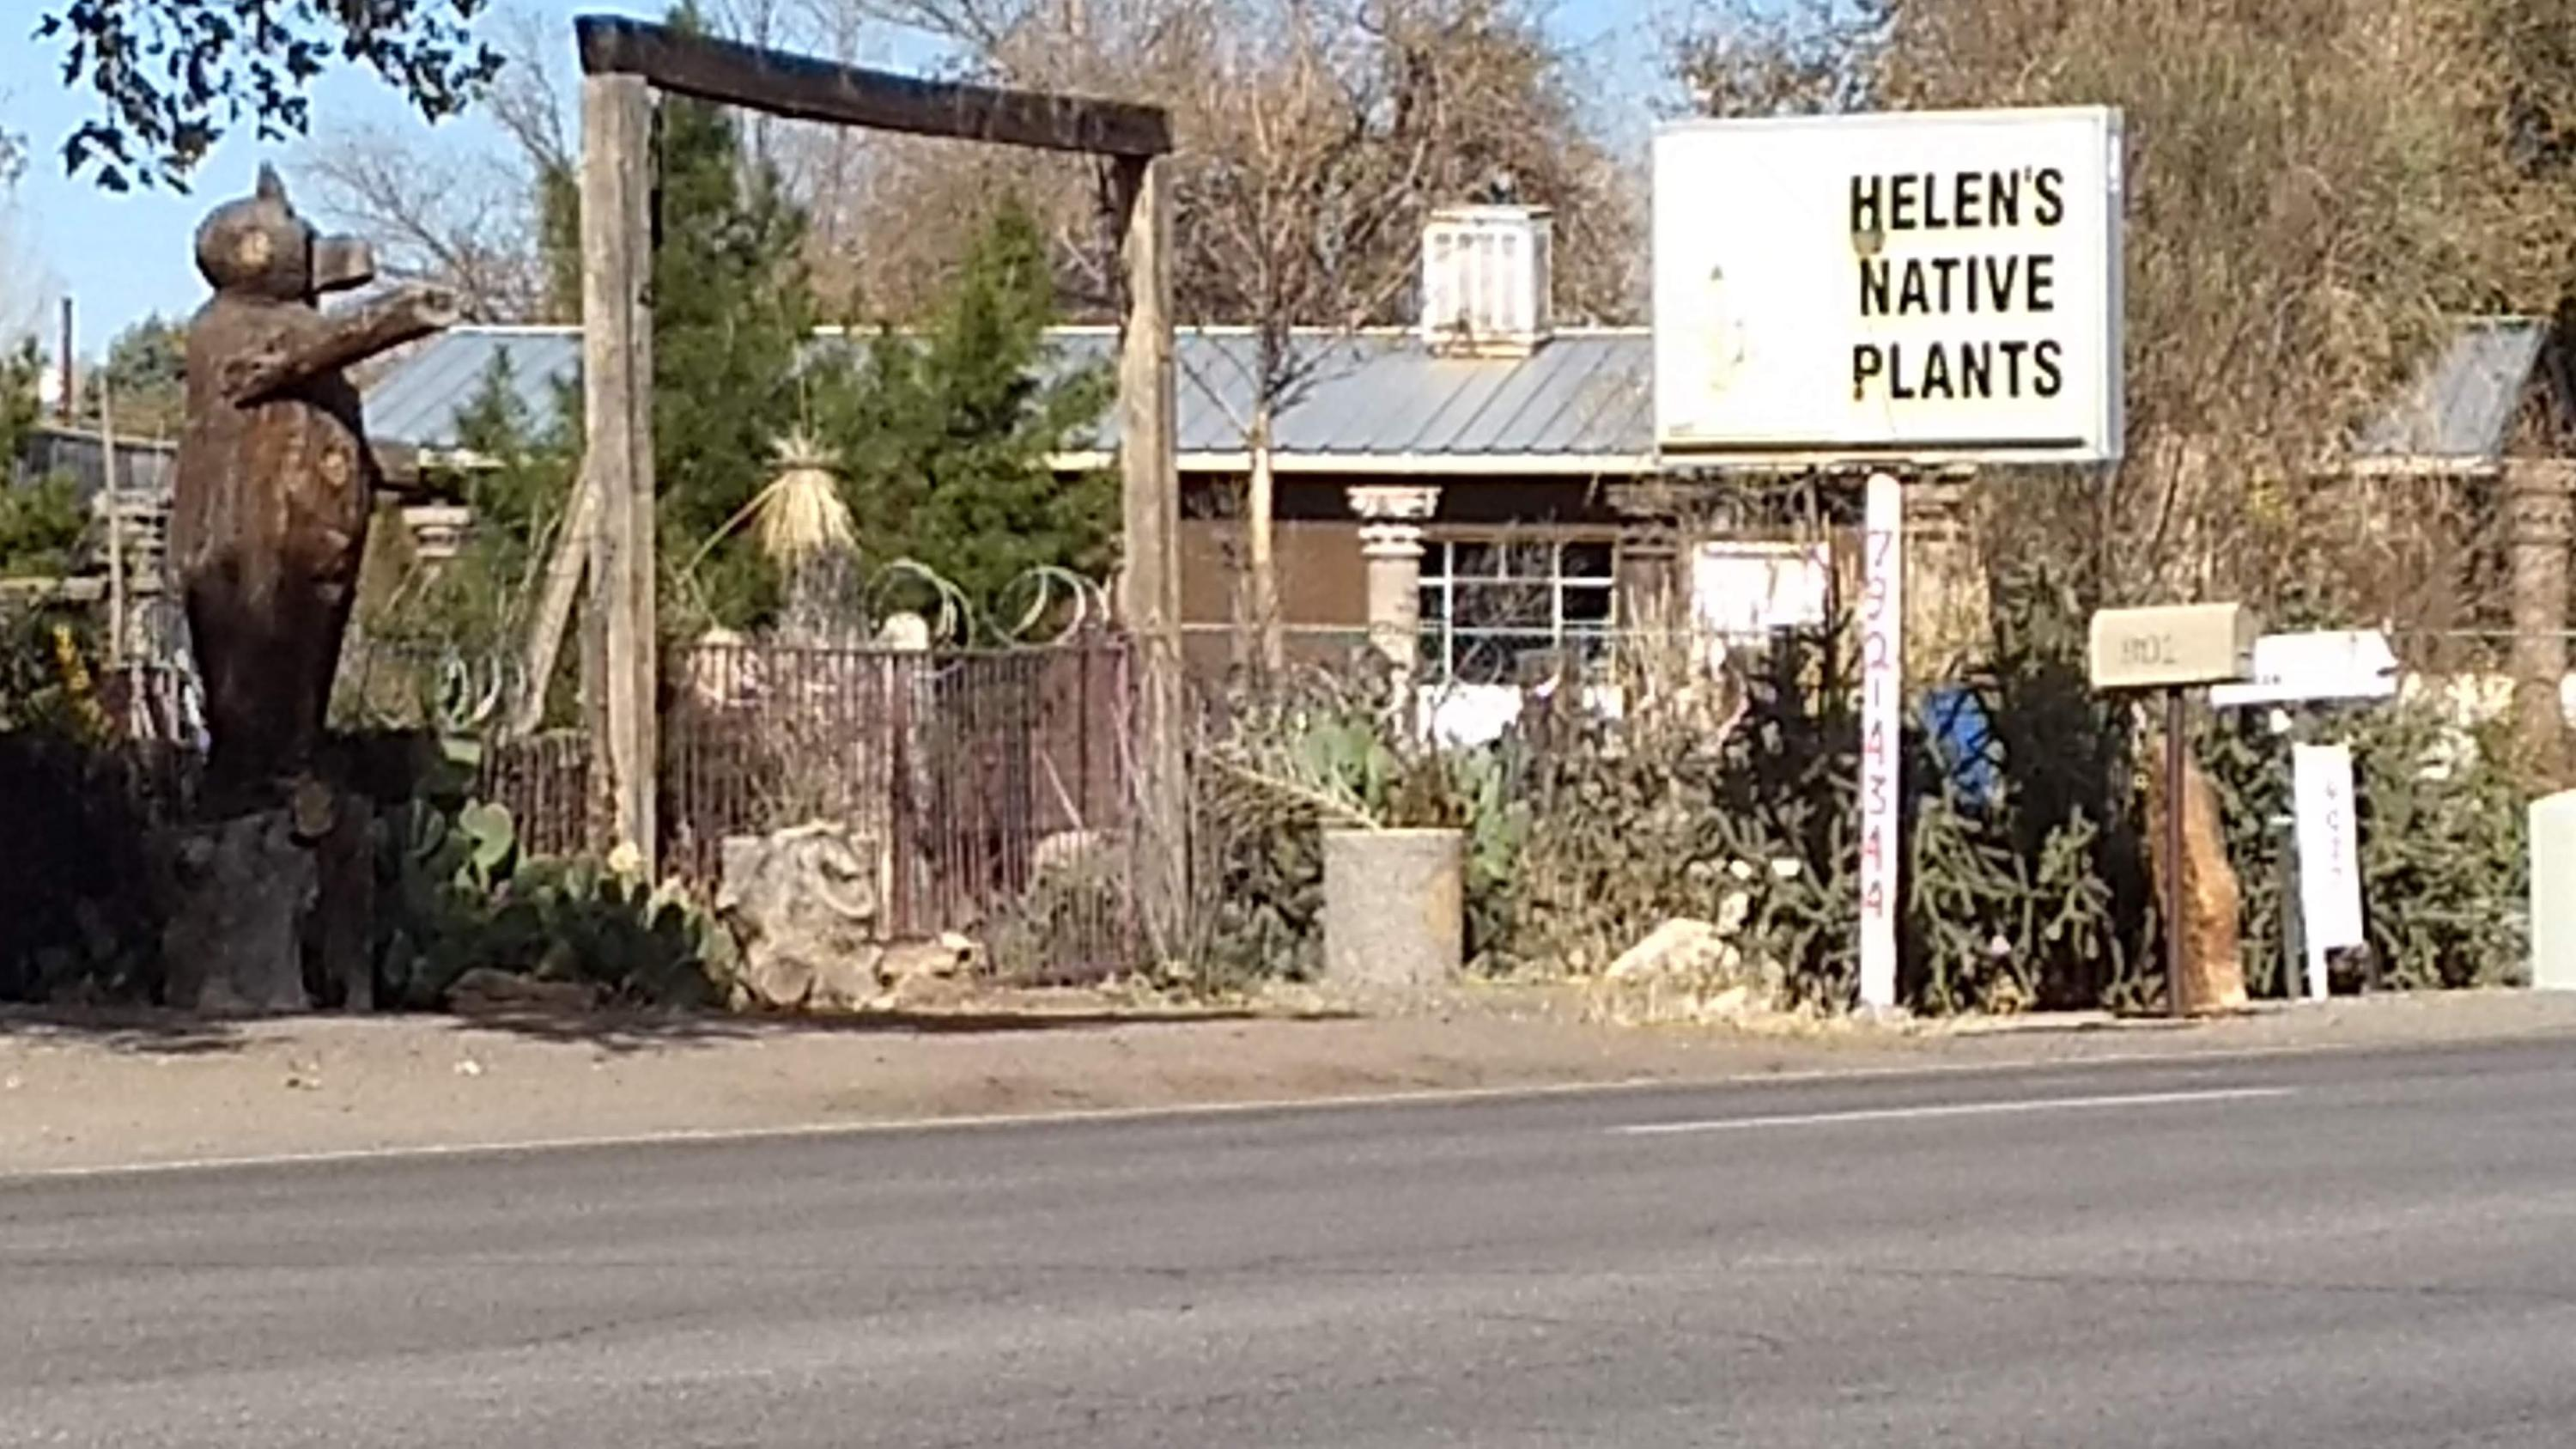 Helens Native Plants  Lot is 80 x 300 Prefab and mobile can convey or be removed.Wonderful North Valley location to live and or run a business zoned Residential and C 1